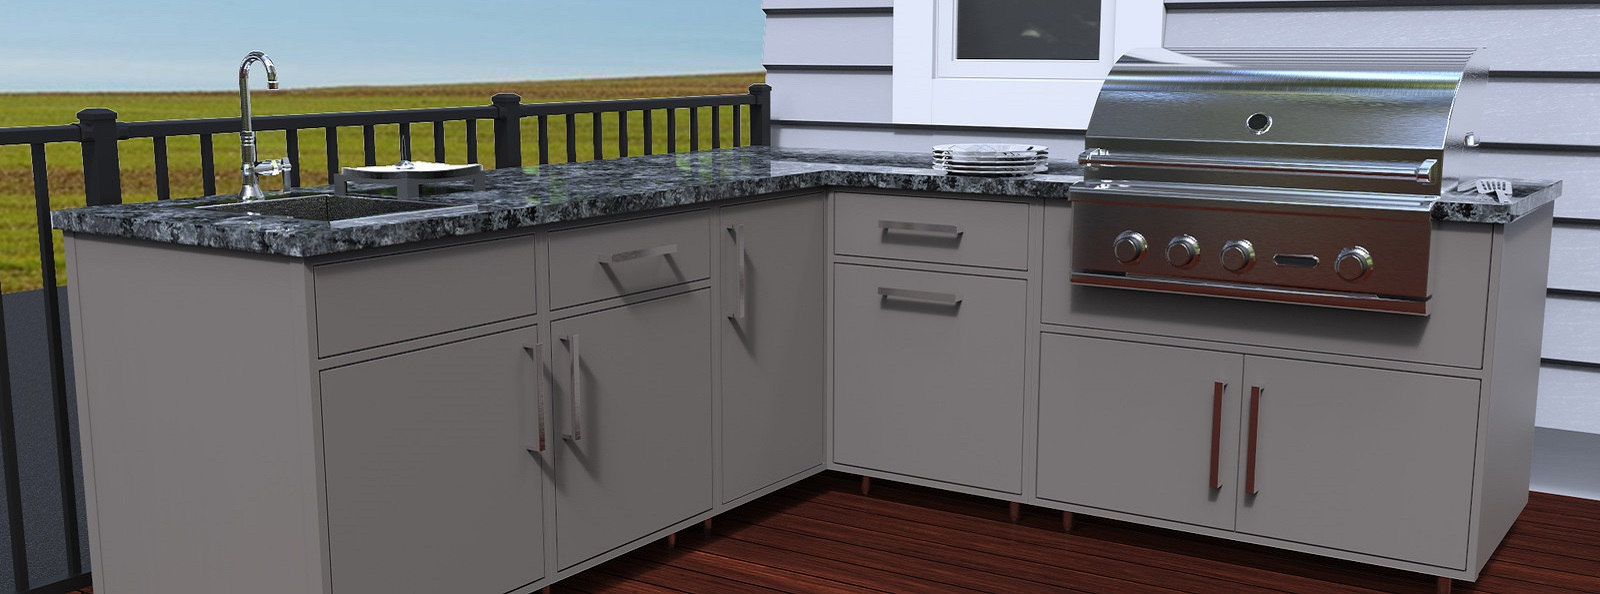 Introducing Wolf Outdoor Cabinetry | Wolf Home Products